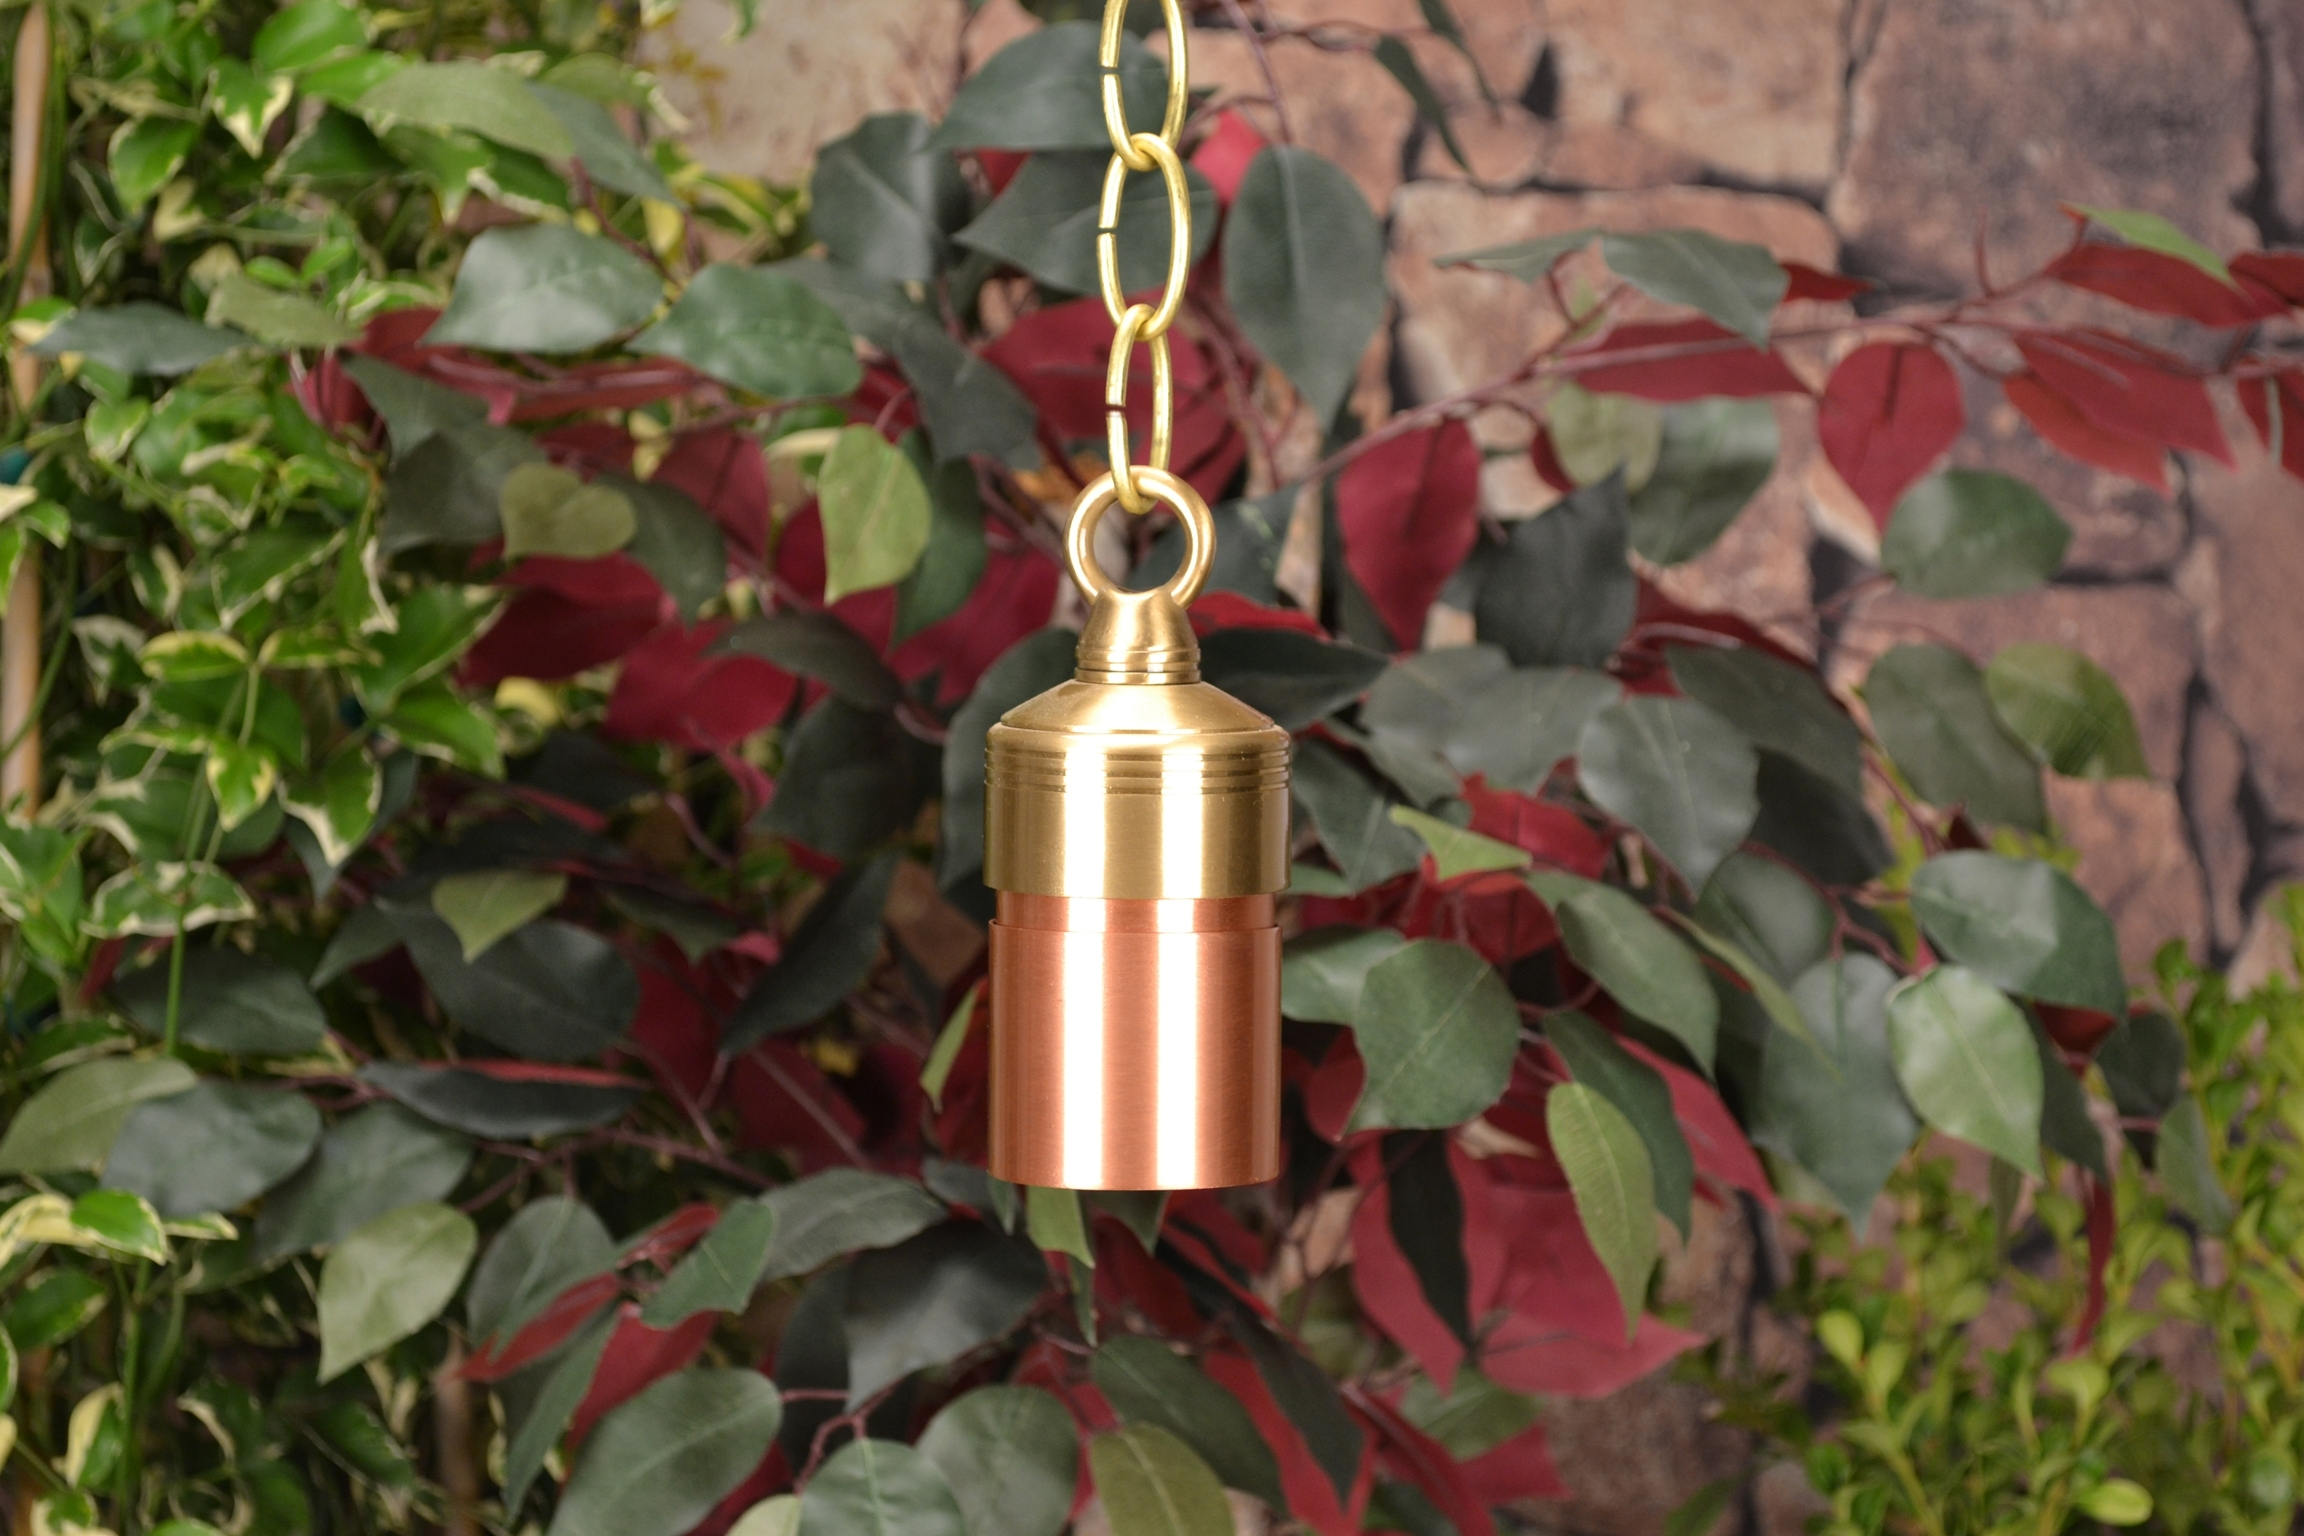 Lancasterunique Lighting Systems 12 Volt Copper Hanging Niche Regarding Outdoor Hanging Low Voltage Lights (#5 of 15)